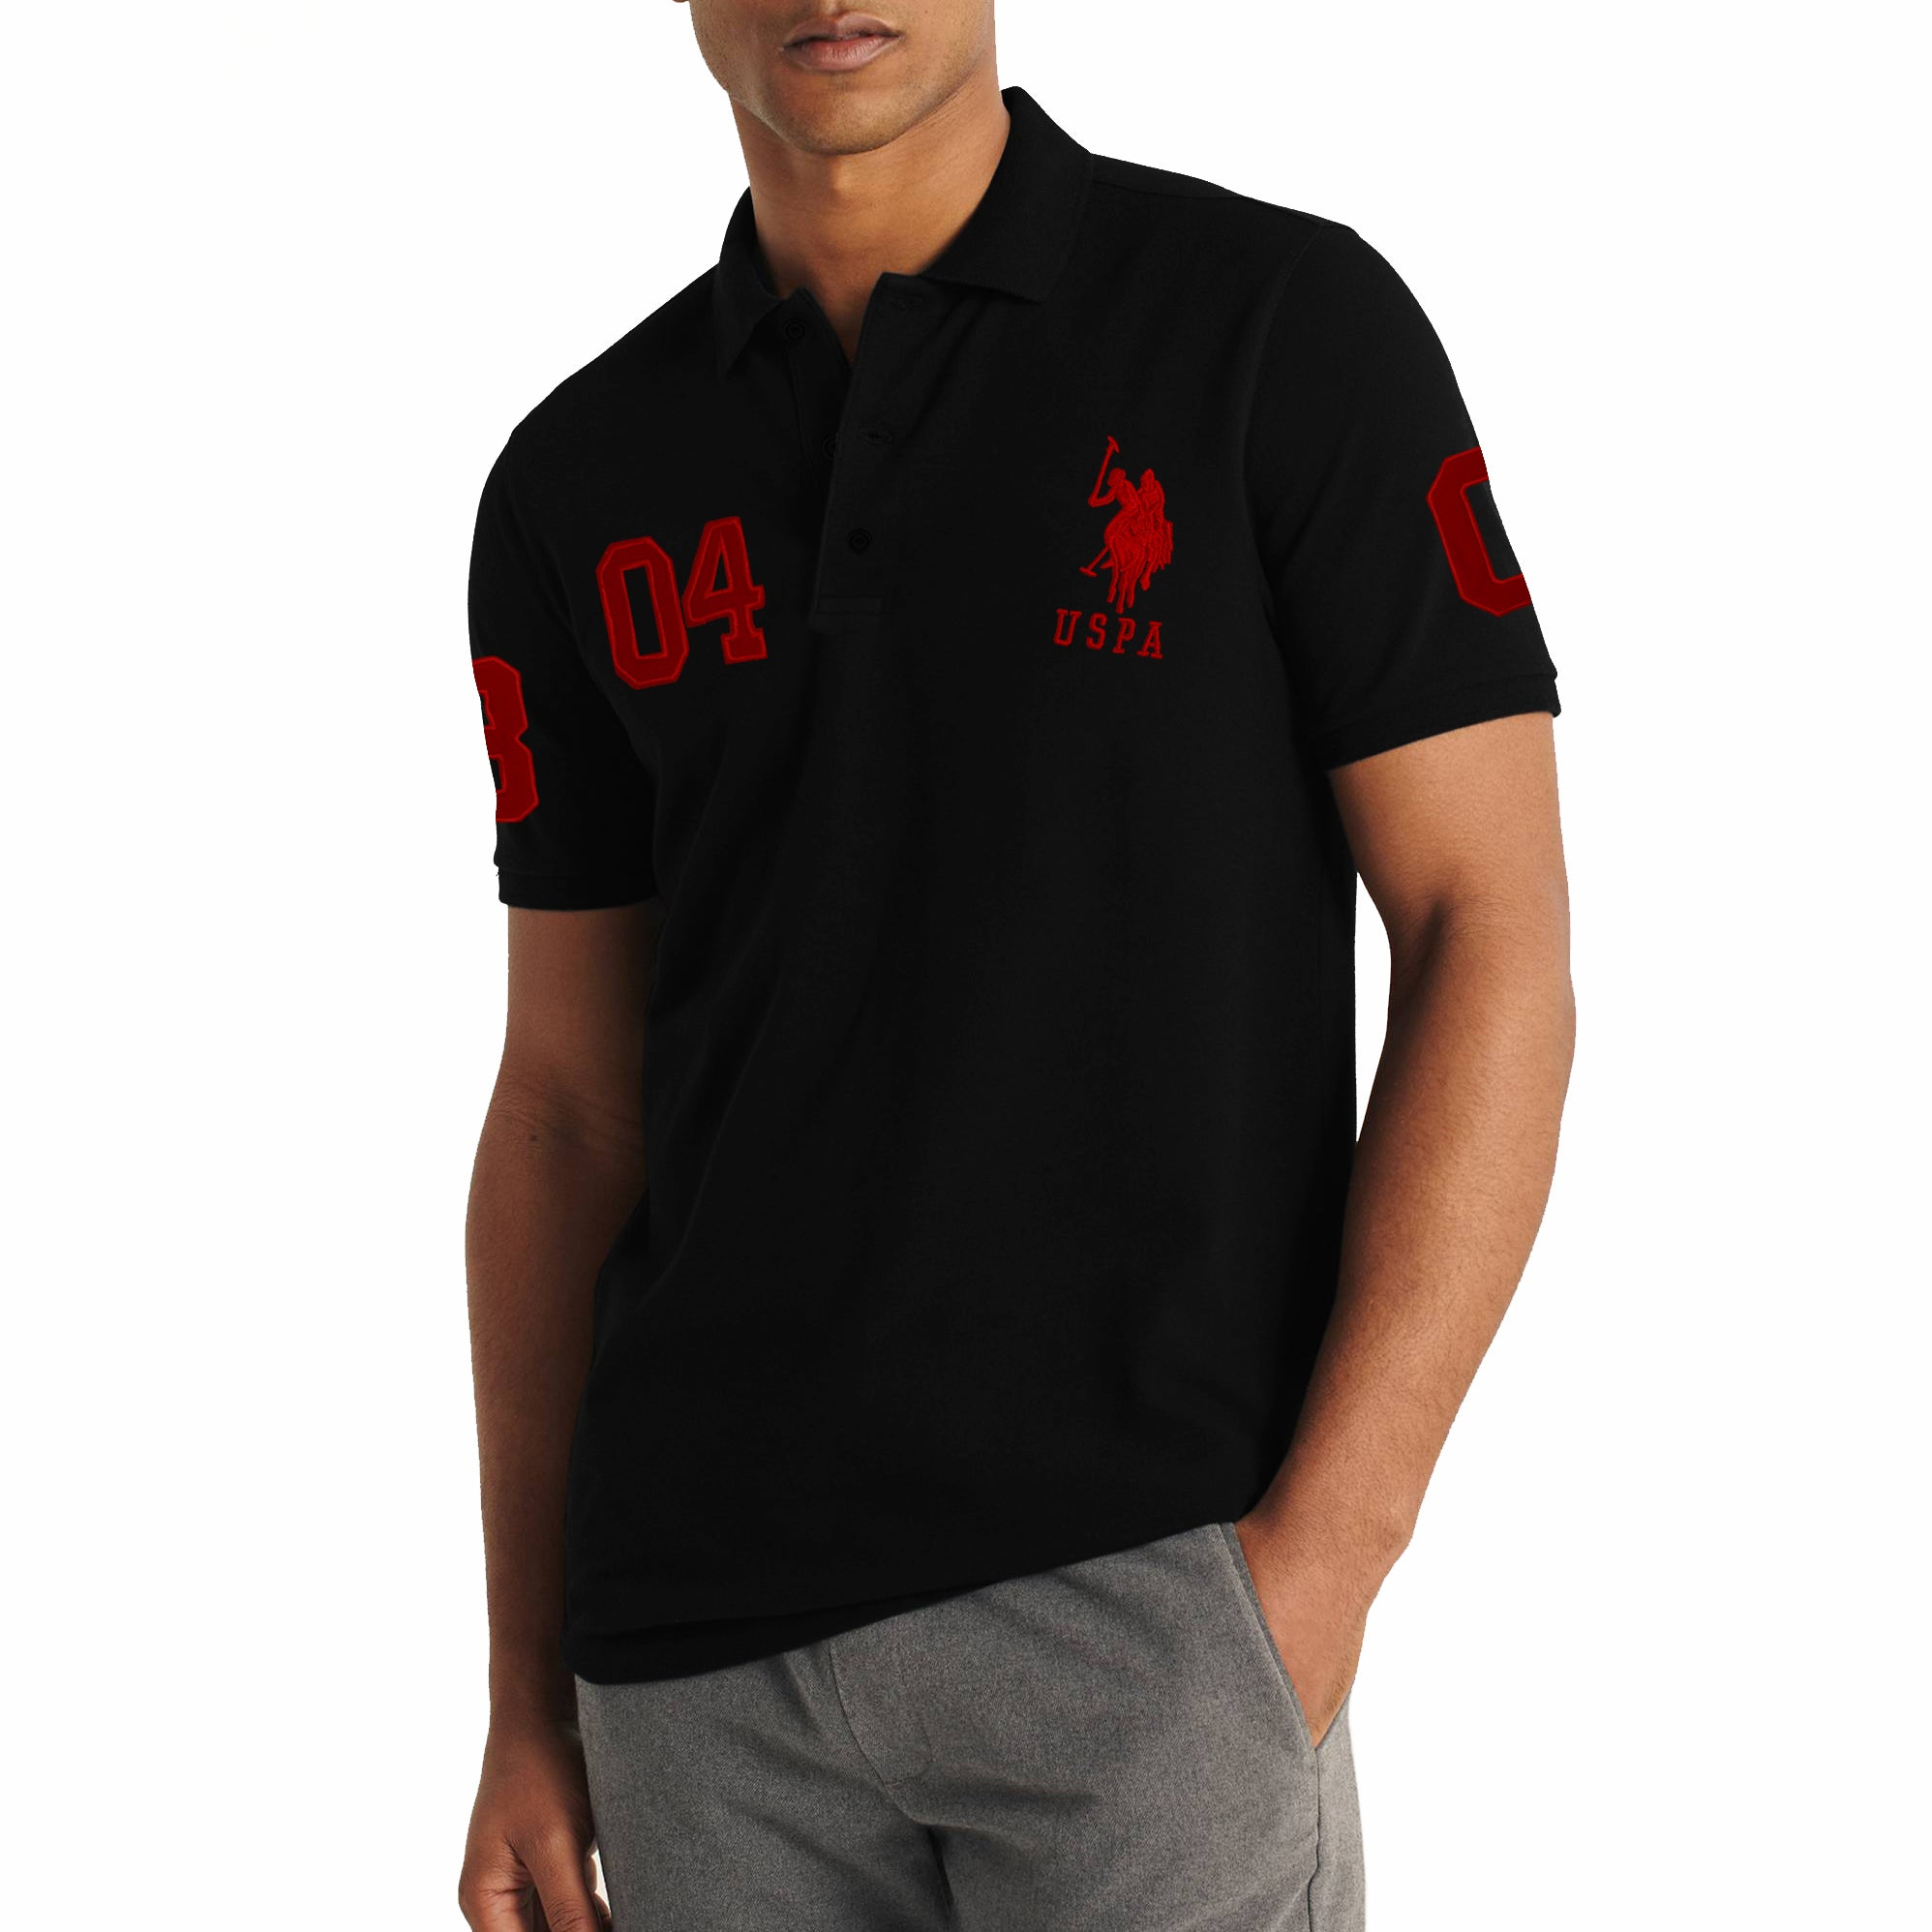 US Polo Muscle Fit Stylish Fashion Shirt For Men-Black With Red Embroidery-NA11106